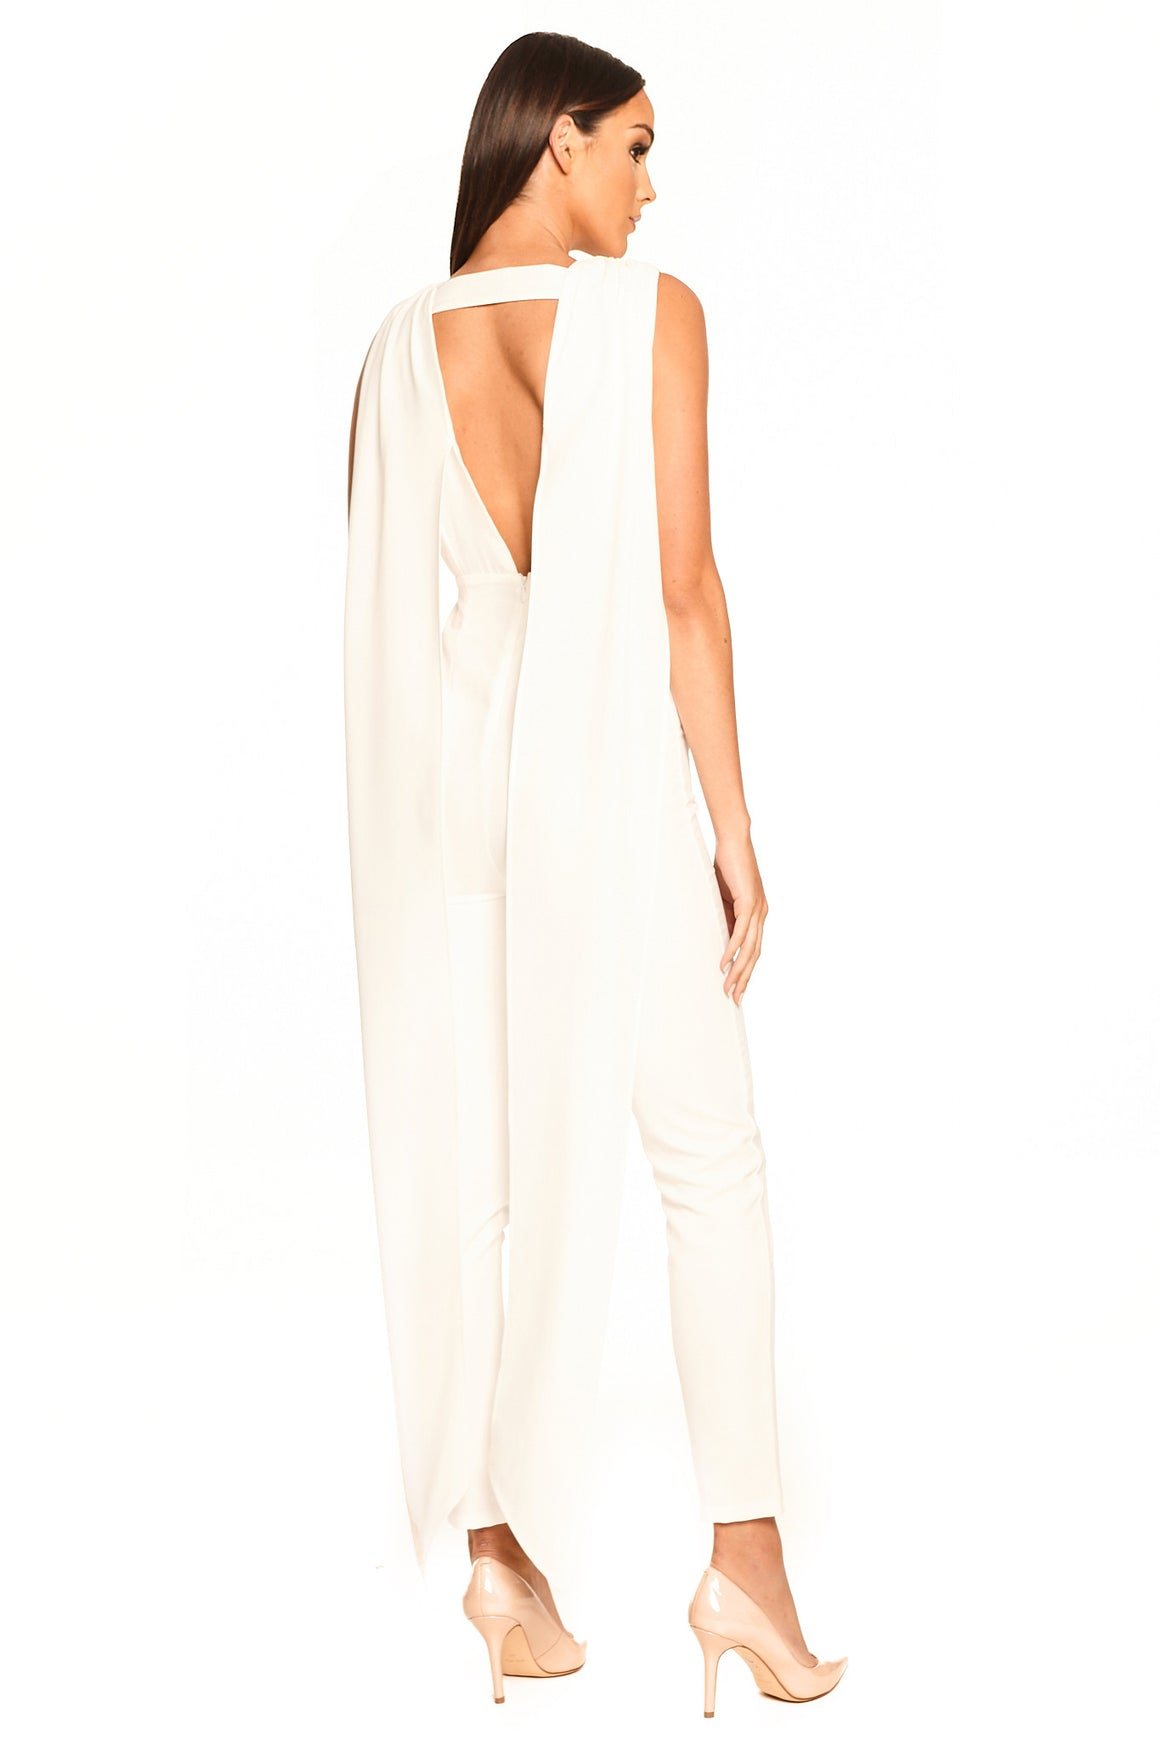 Olympia V-Neck Pantsuit - White [SAMPLE SALE]